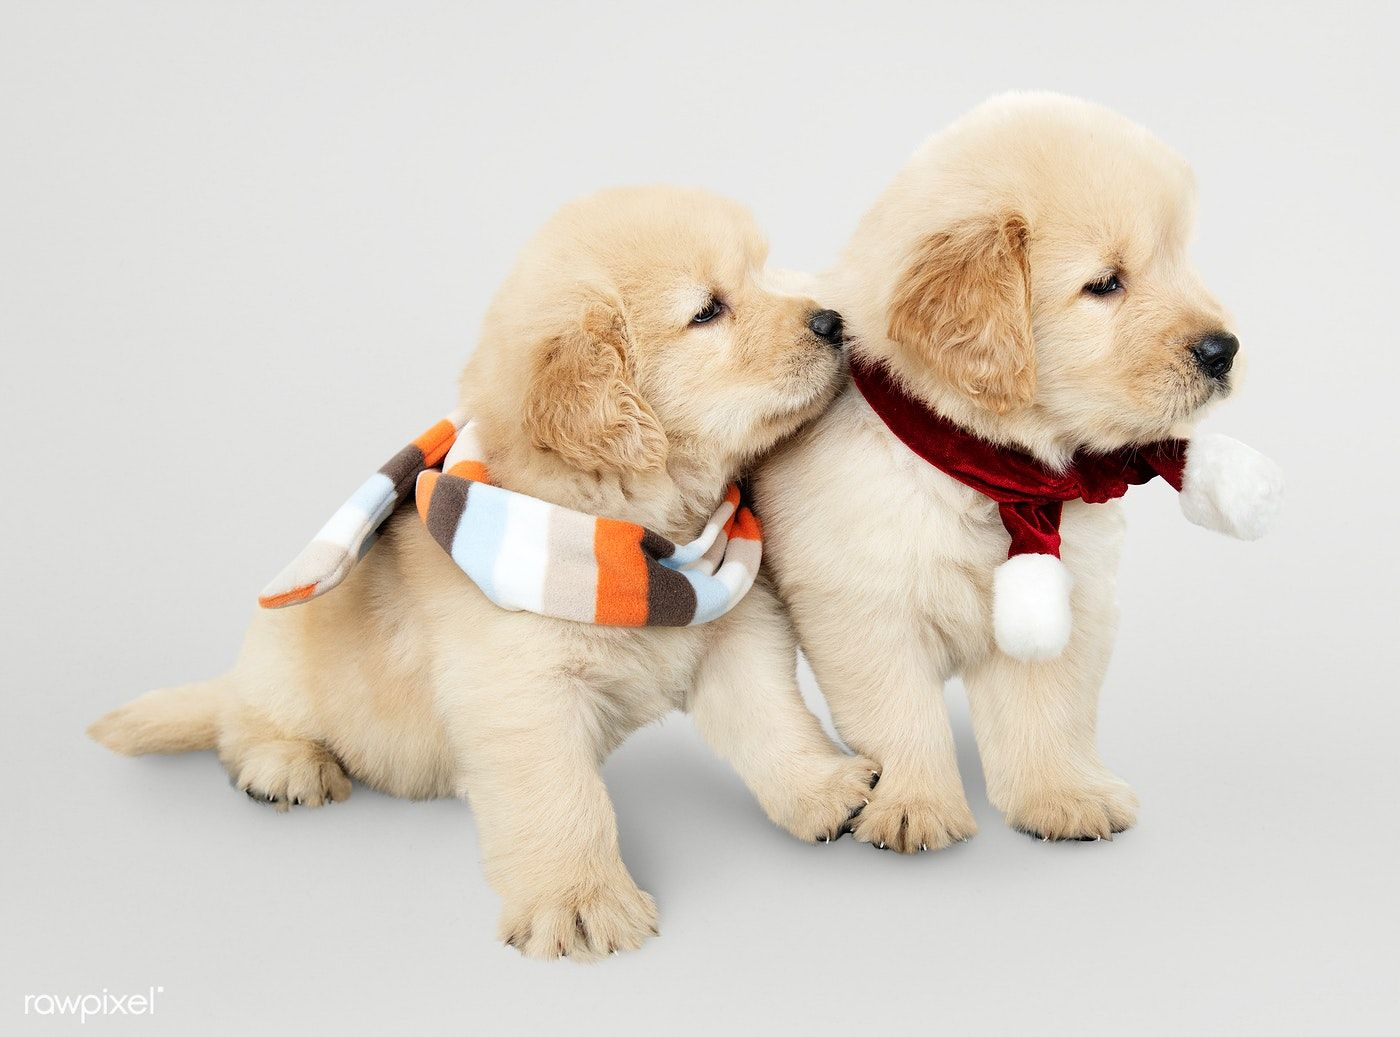 Download Premium Psd Of Two Golden Retriever Puppies Wearing